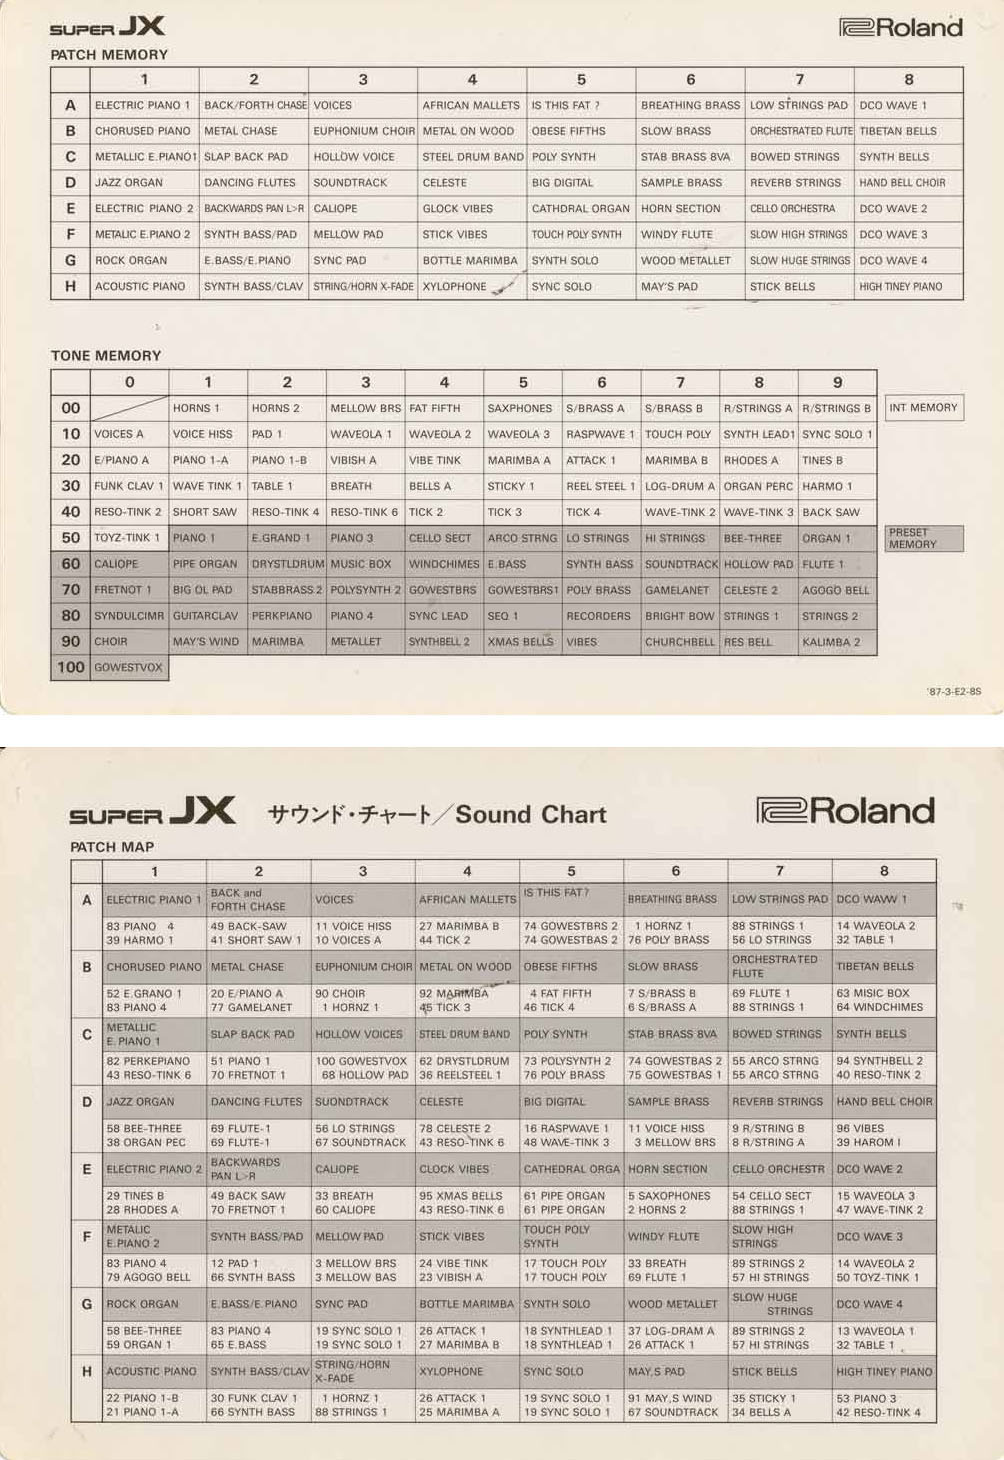 Jx-8p factory patches